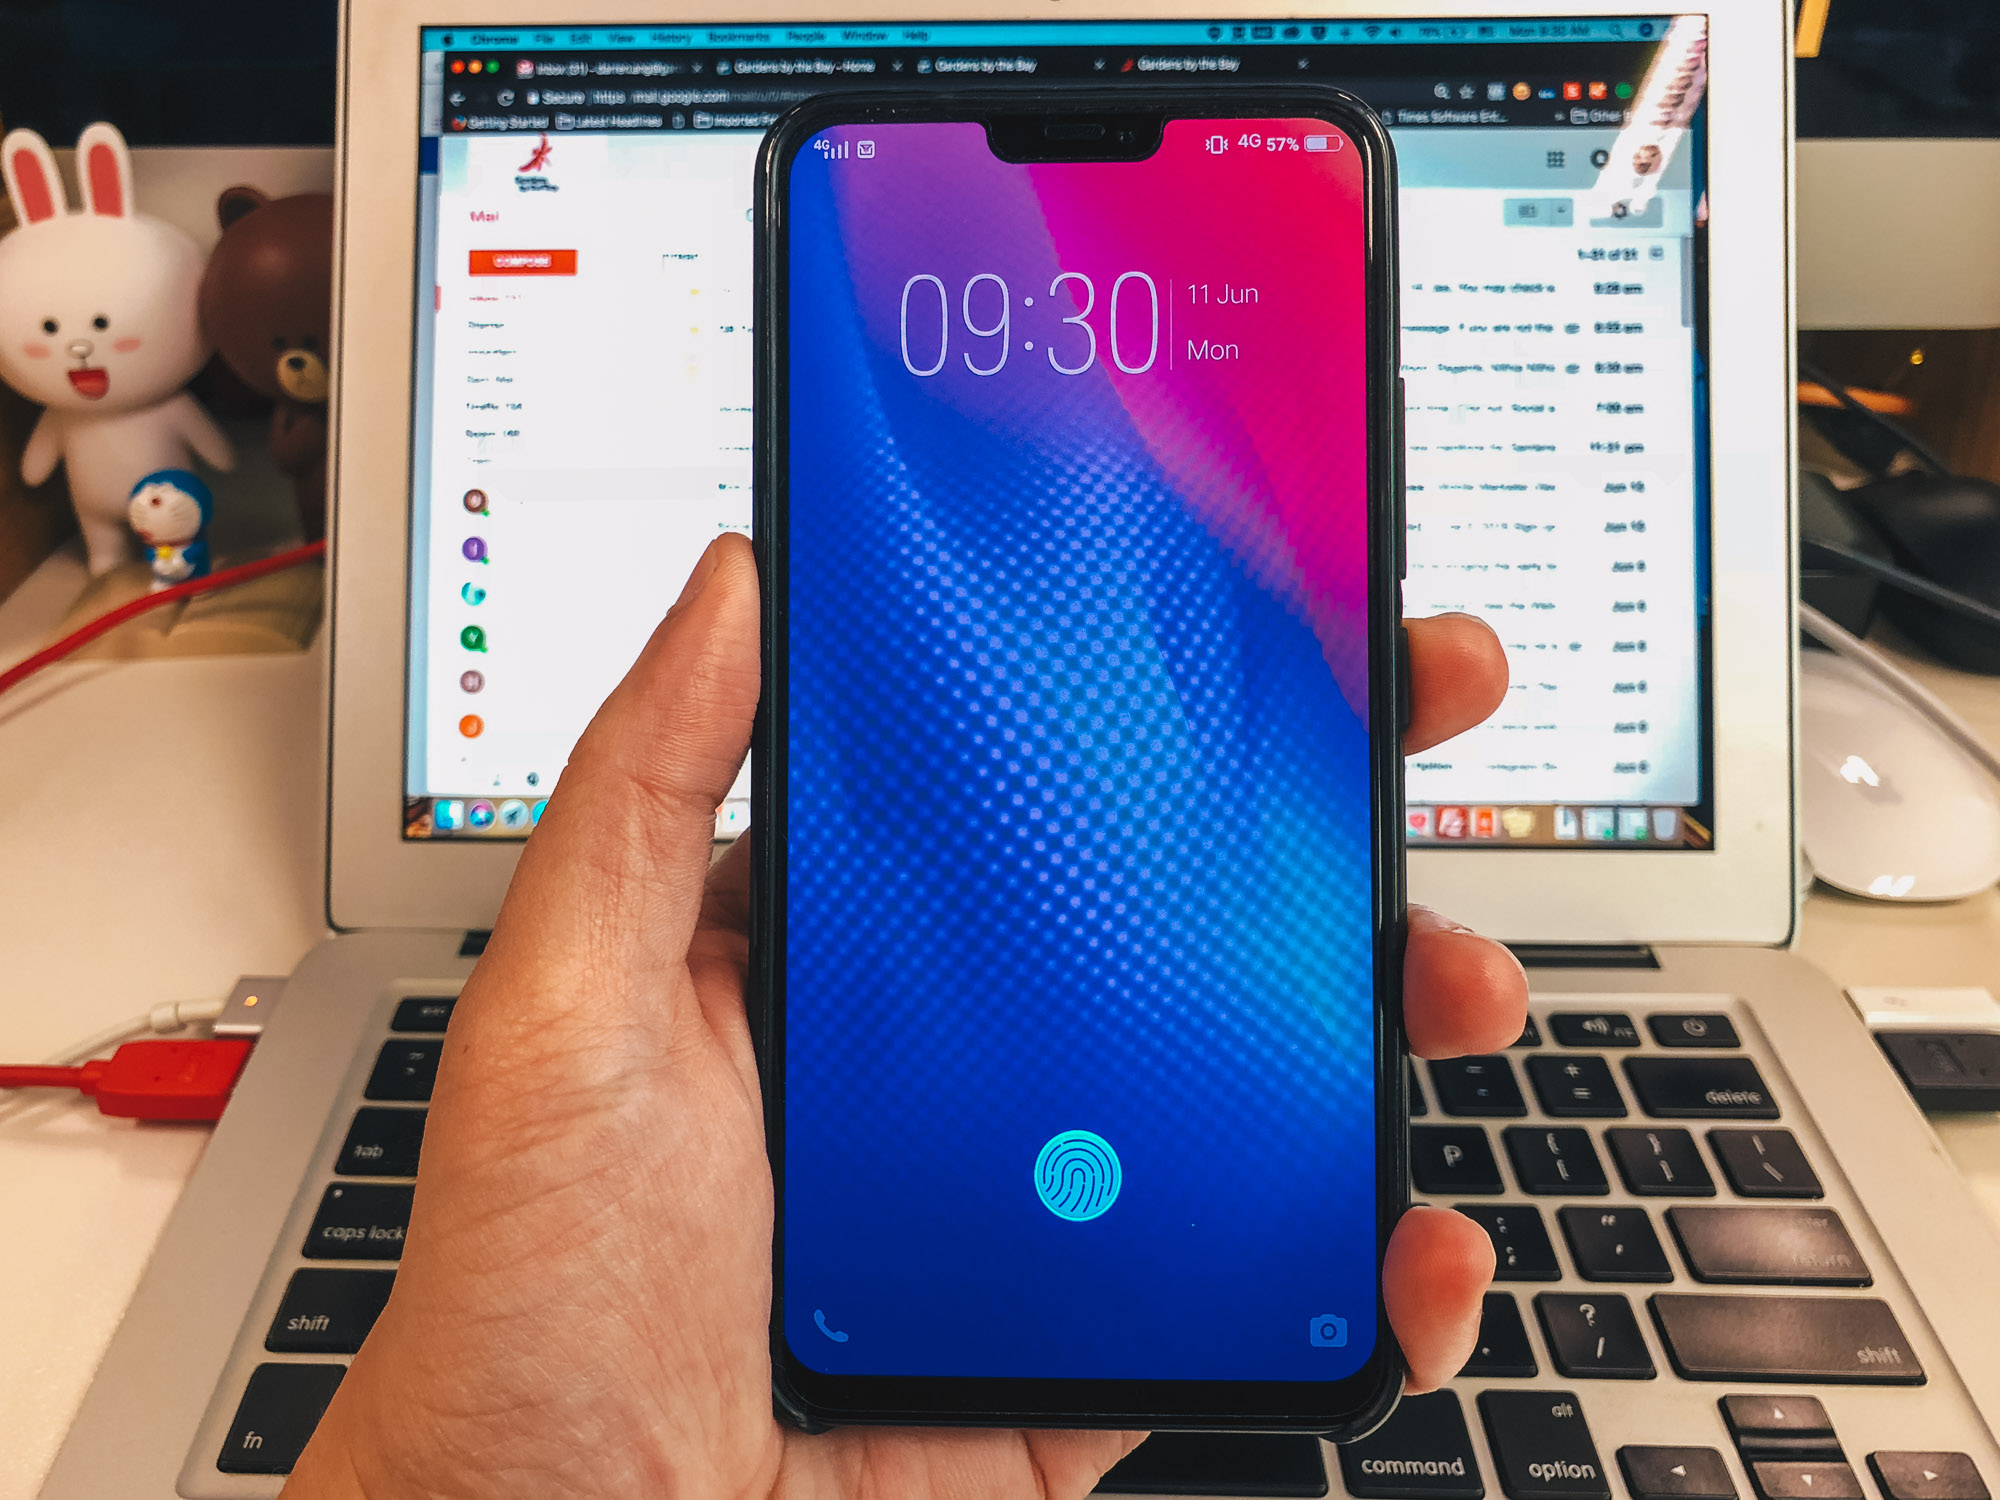 Review - VIVO'S New X21 Flagship Smartphone